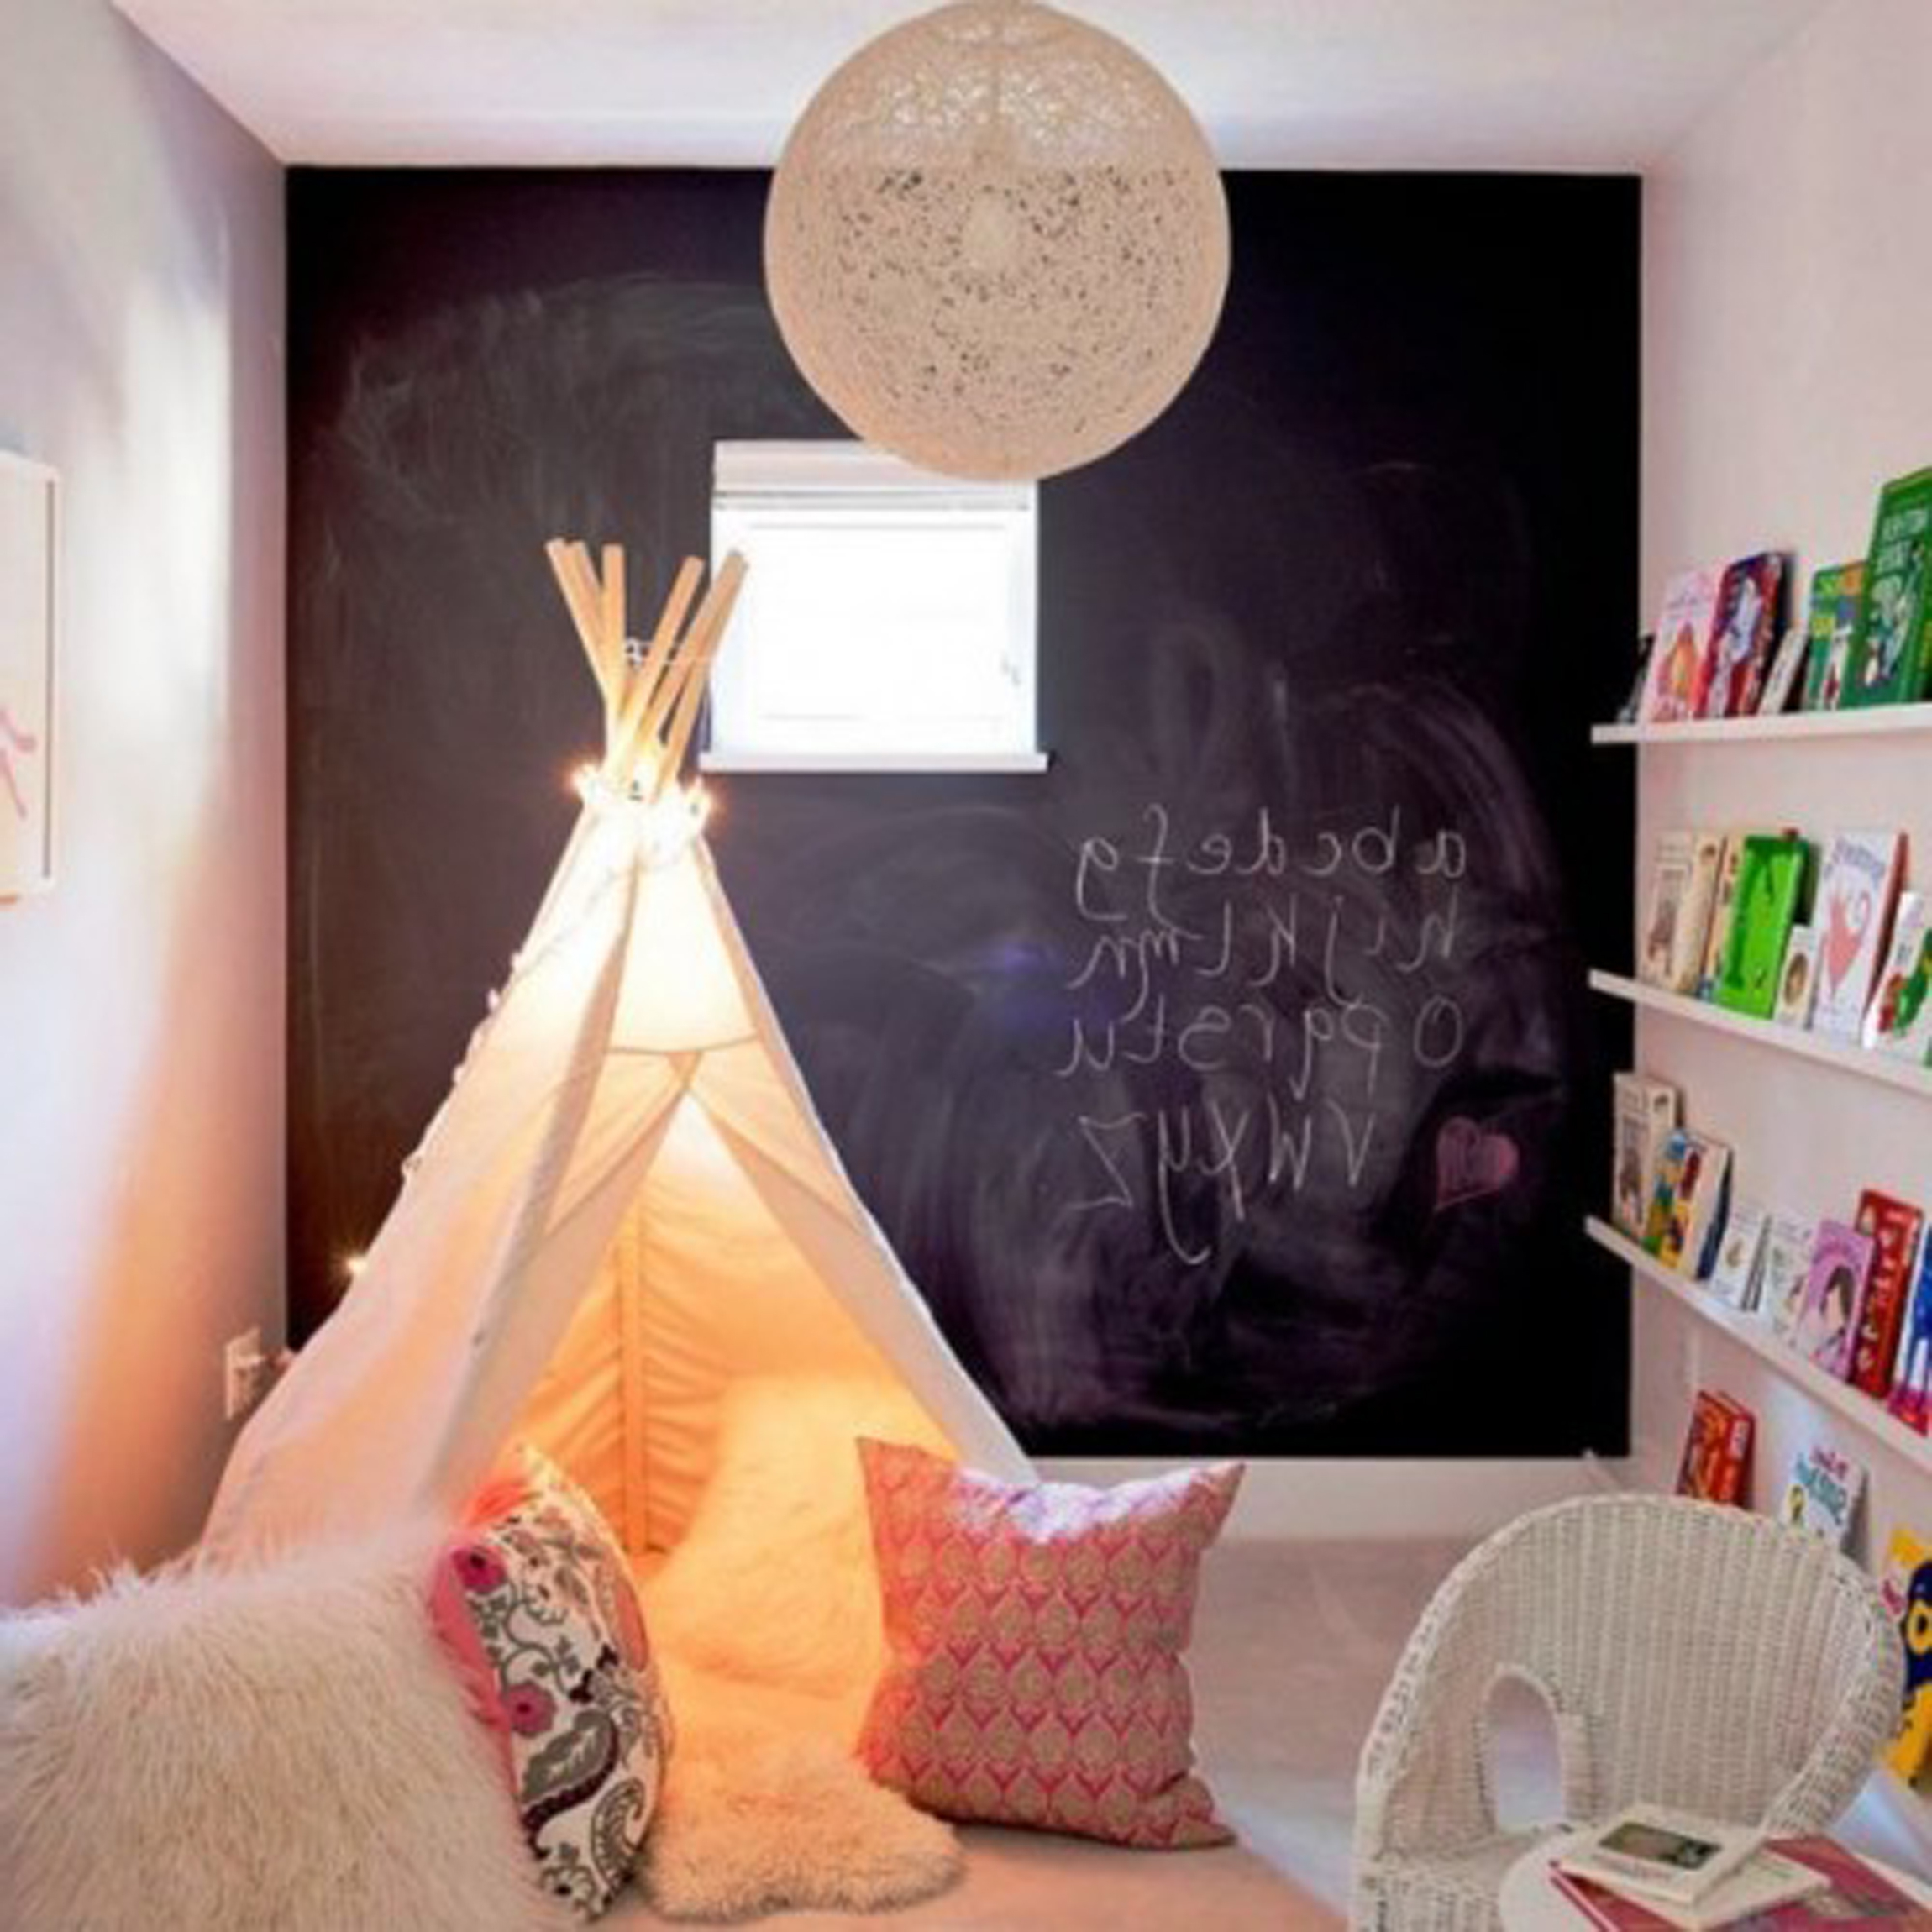 Kids Room Design With Cute Chalkboard Decoration Ideas Plus Entrancing Beige Kids Tent Model And Adorable Wall Shelves Plus Unique Pendant Lamp Design (Image 25 of 28)